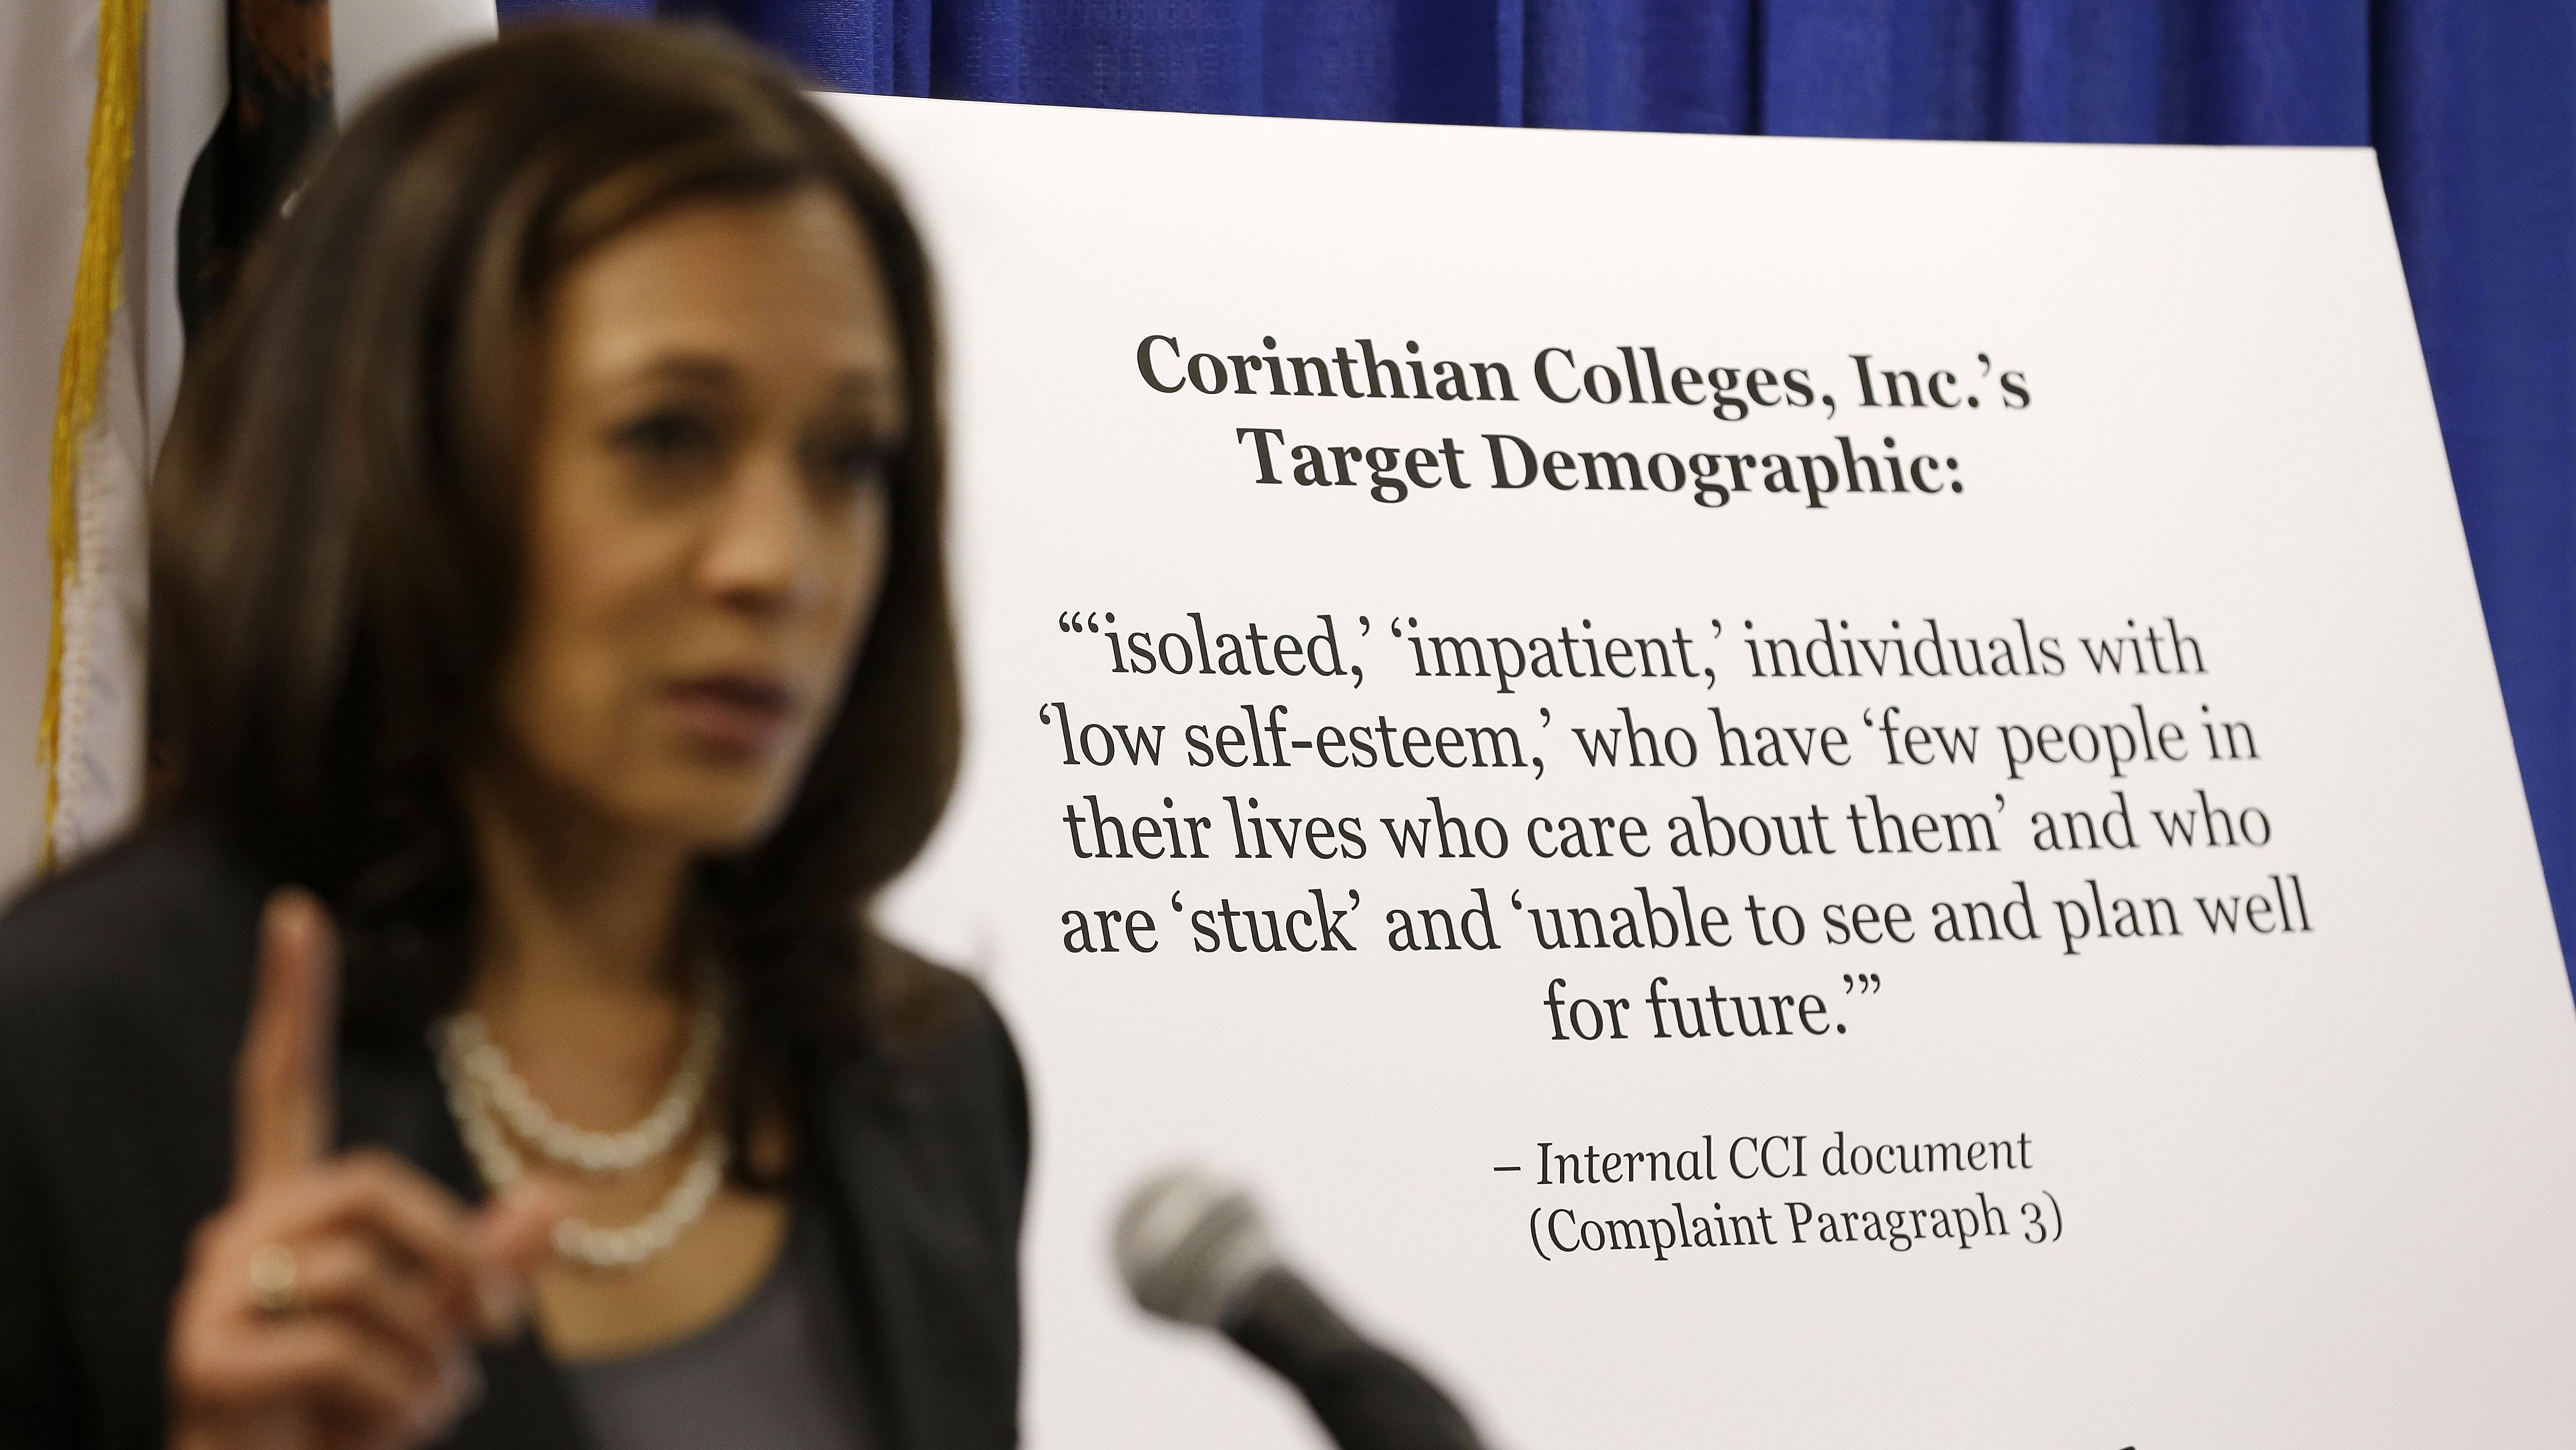 California Attorney General Kamala Harris gestures while standing by a display showing the target demographic of Corinthian Colleges during a news conference Thursday, Oct. 10, 2013, in San Francisco. California's attorney general is suing the college company, alleging it misrepresented job placement rates and school programs to lure low-income state residents. According to the AG's Office, Santa Ana-based Corinthian and its subsidiaries operate Everest, Heald and WyoTech colleges and have 81,000 students. (AP Photo/Eric Risberg)